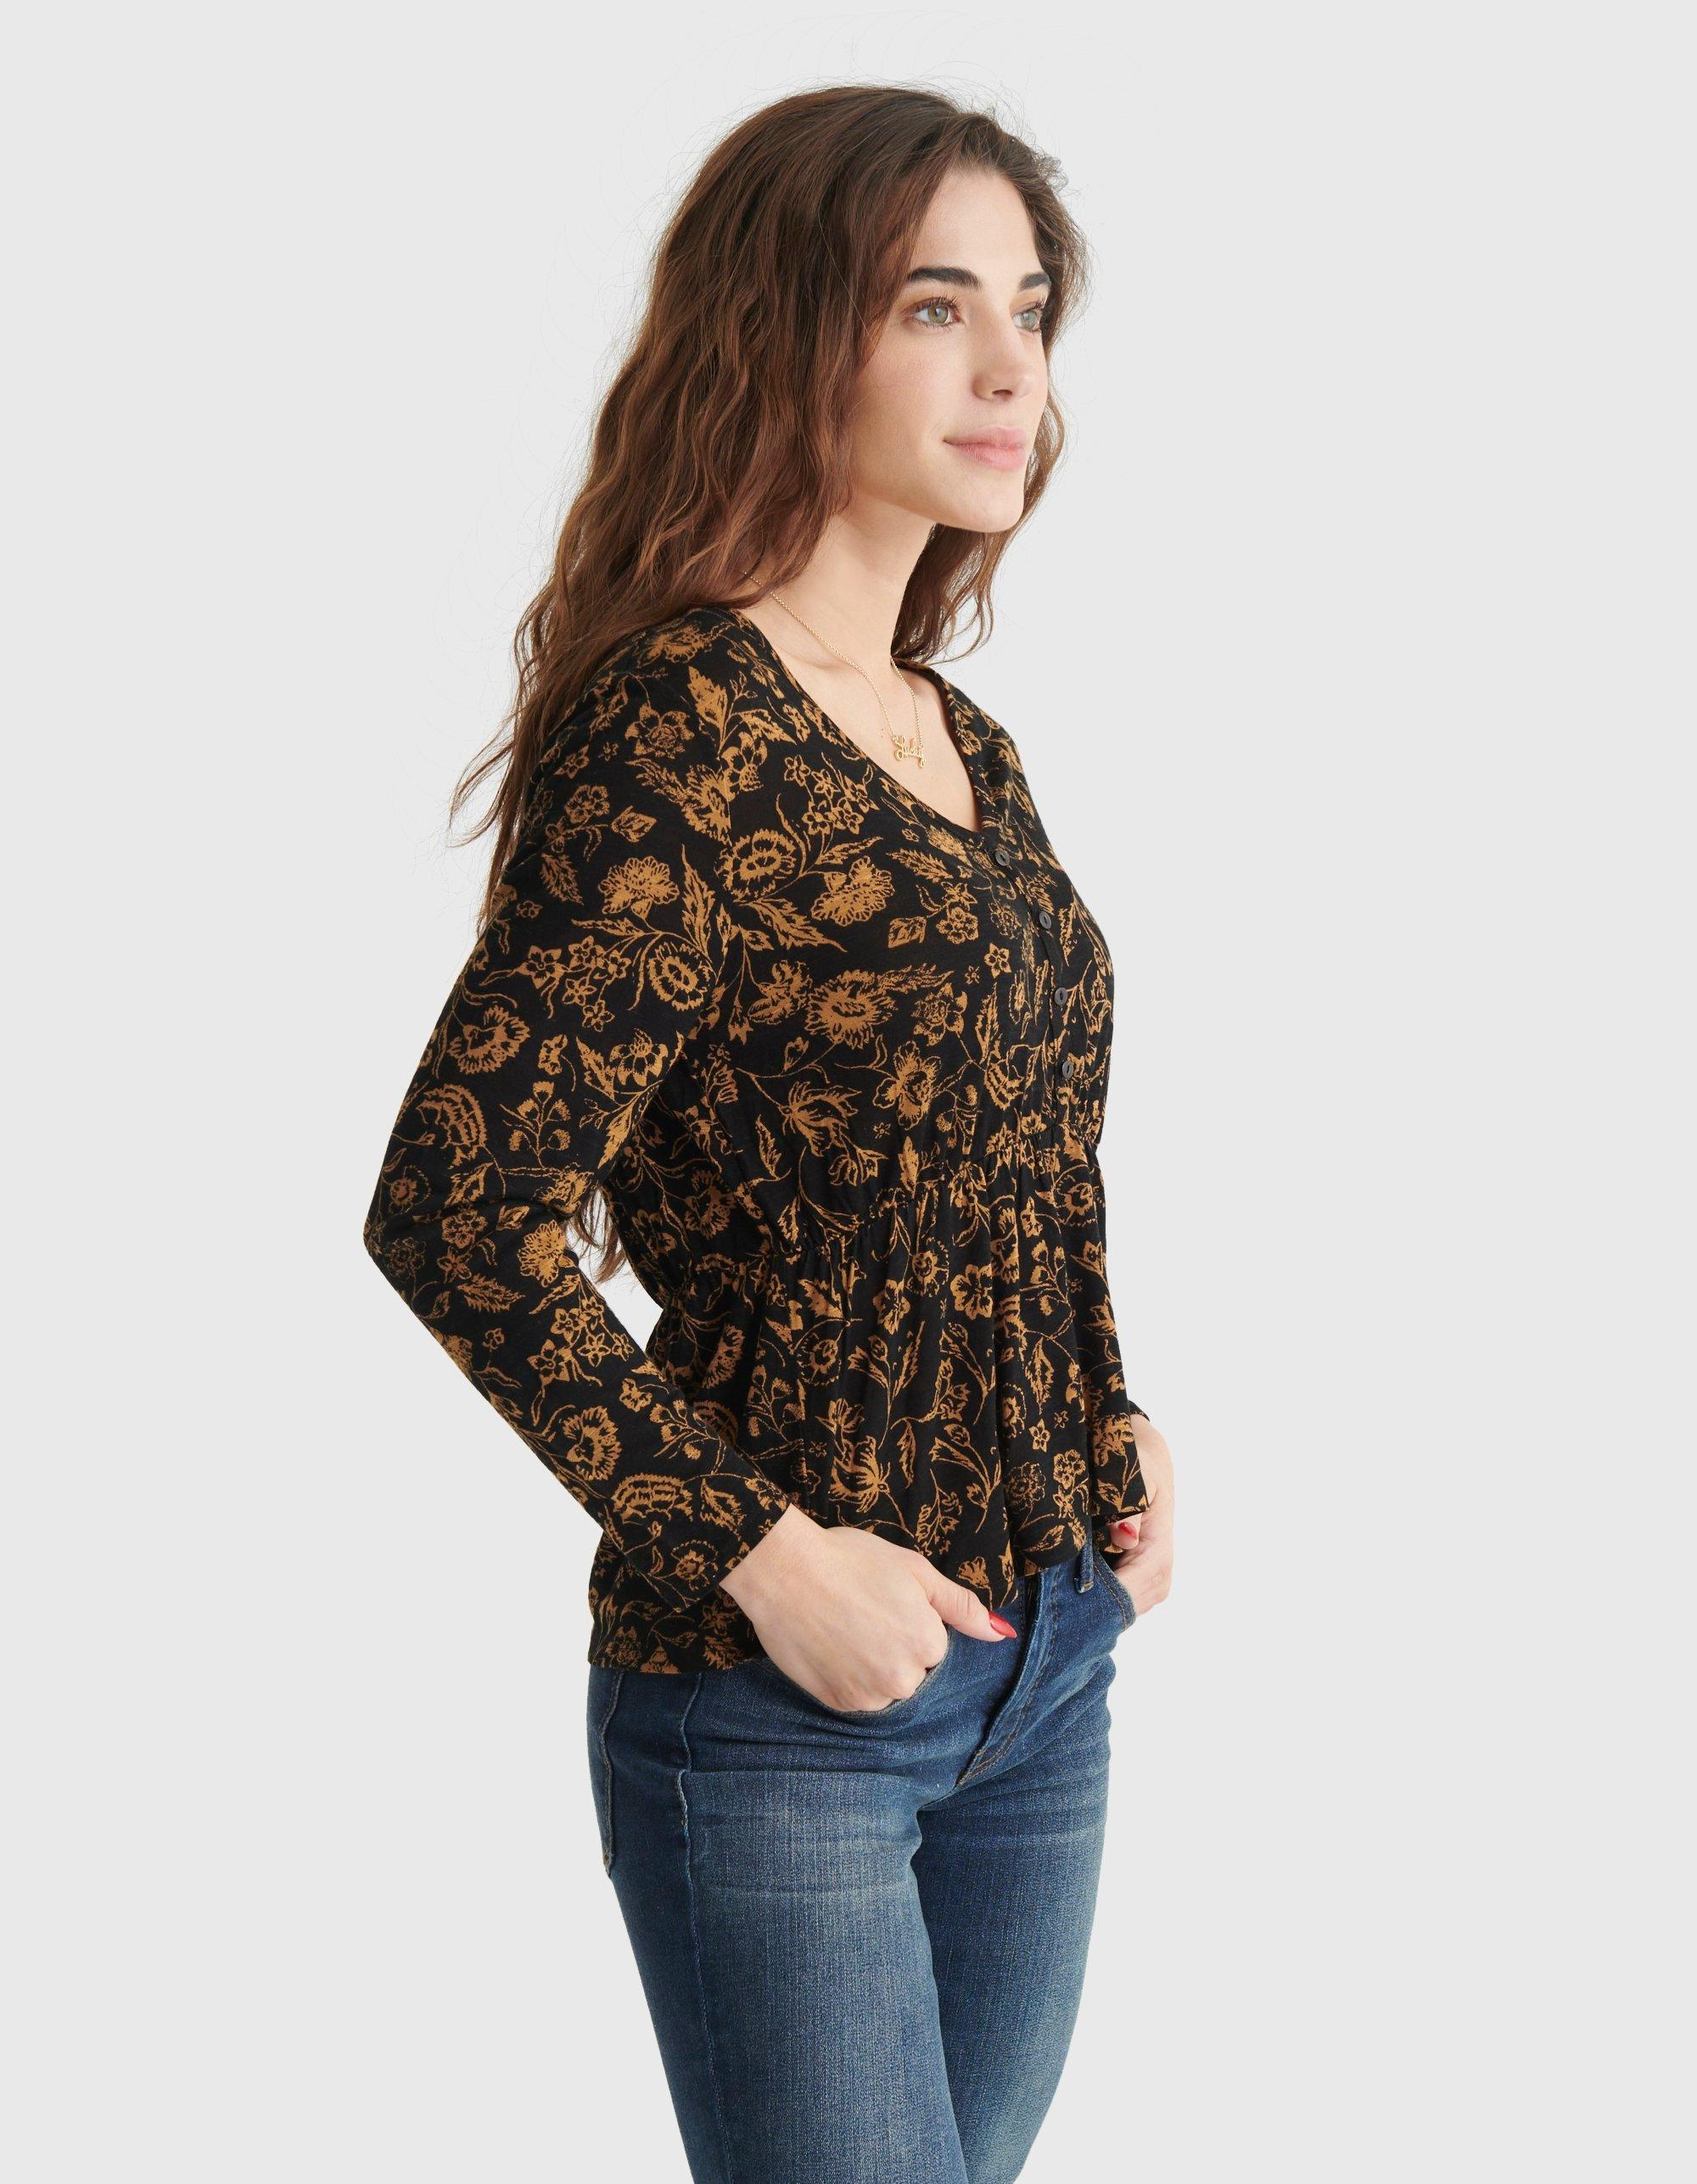 RELAXED-FIT PEPLUM V-NECK TOP, image 3